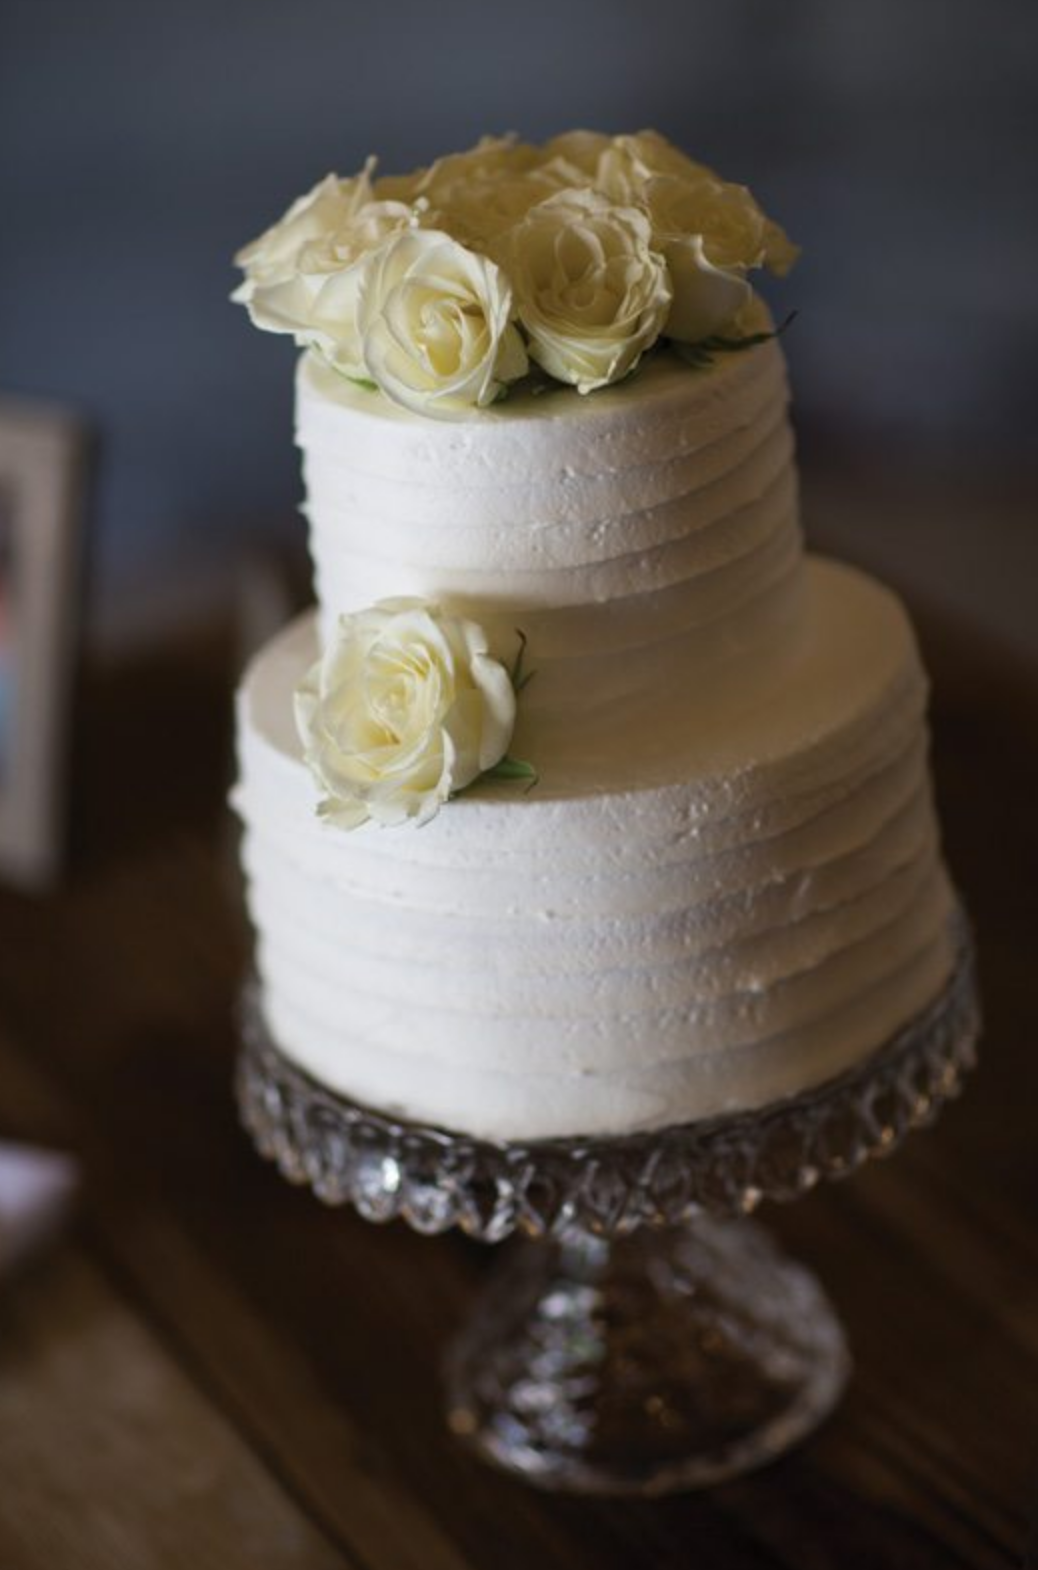 Wedding Cake featured in Bridal Couture Magazine - Shelby & Tevin chose Sunrise Bakery as one of their vendors for their special day. See who else they chose as their wedding vendors in Bridal Couture Magazine.